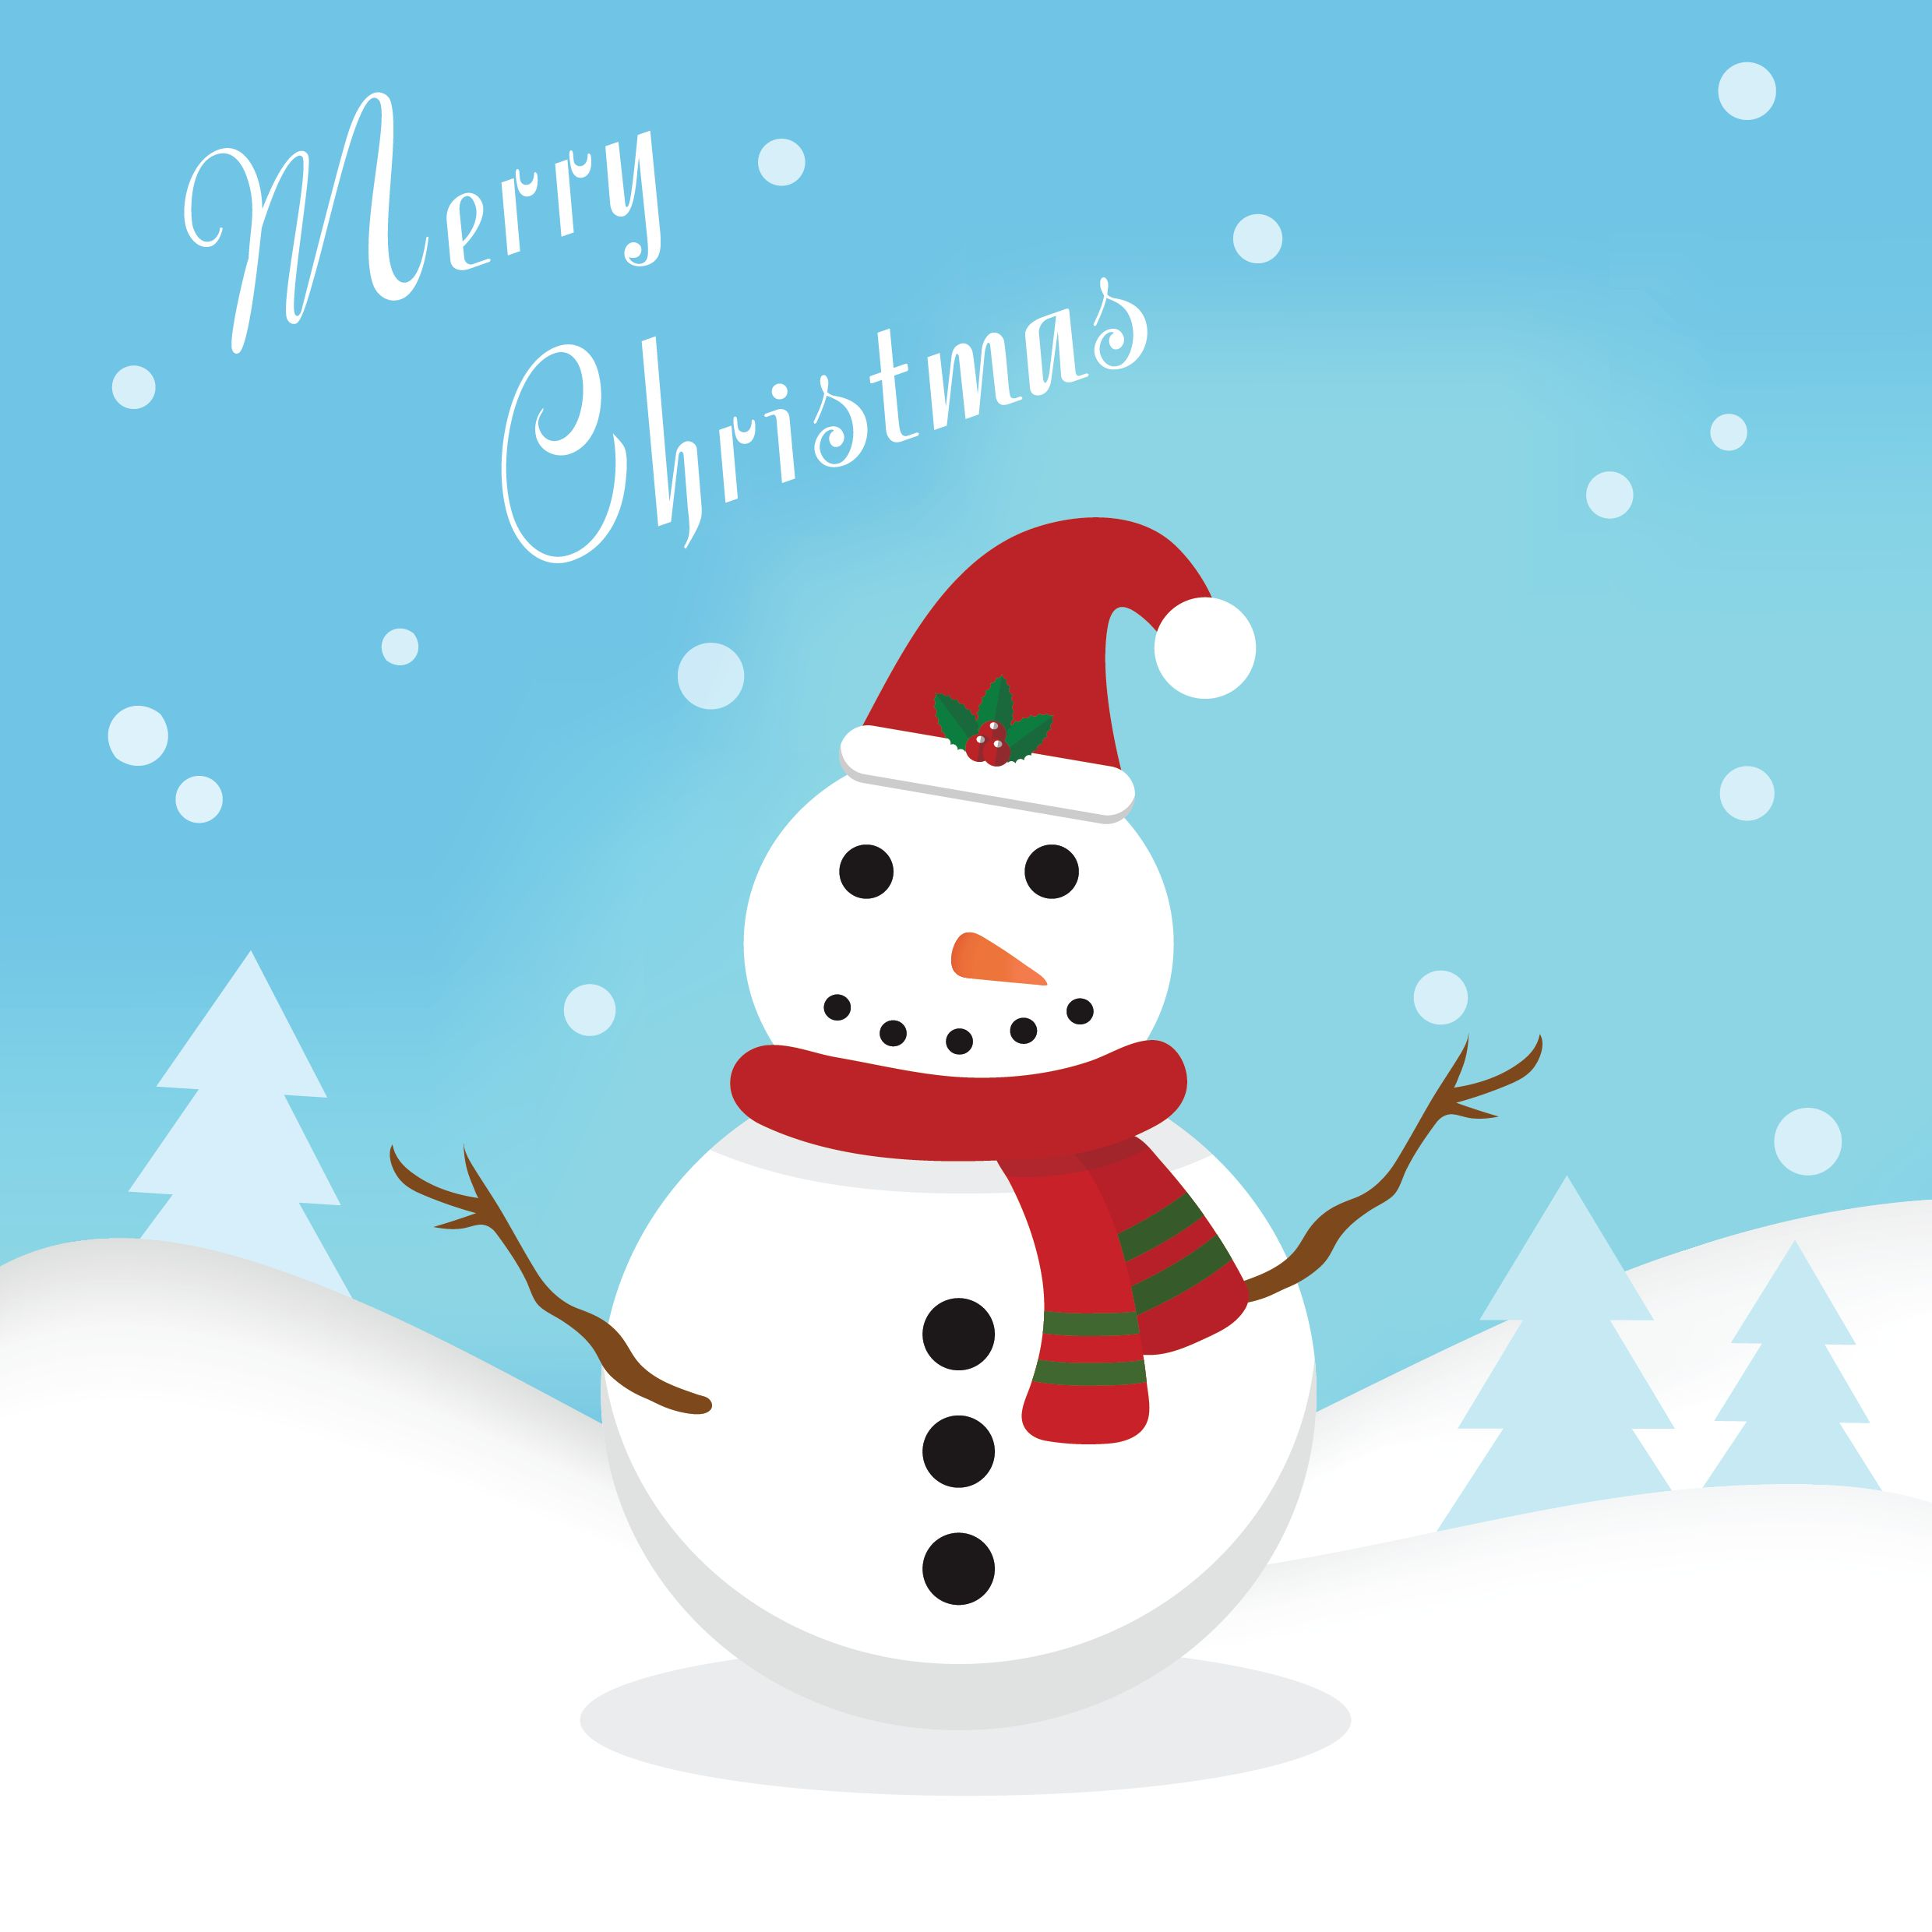 Best Christmas Images for Whats App